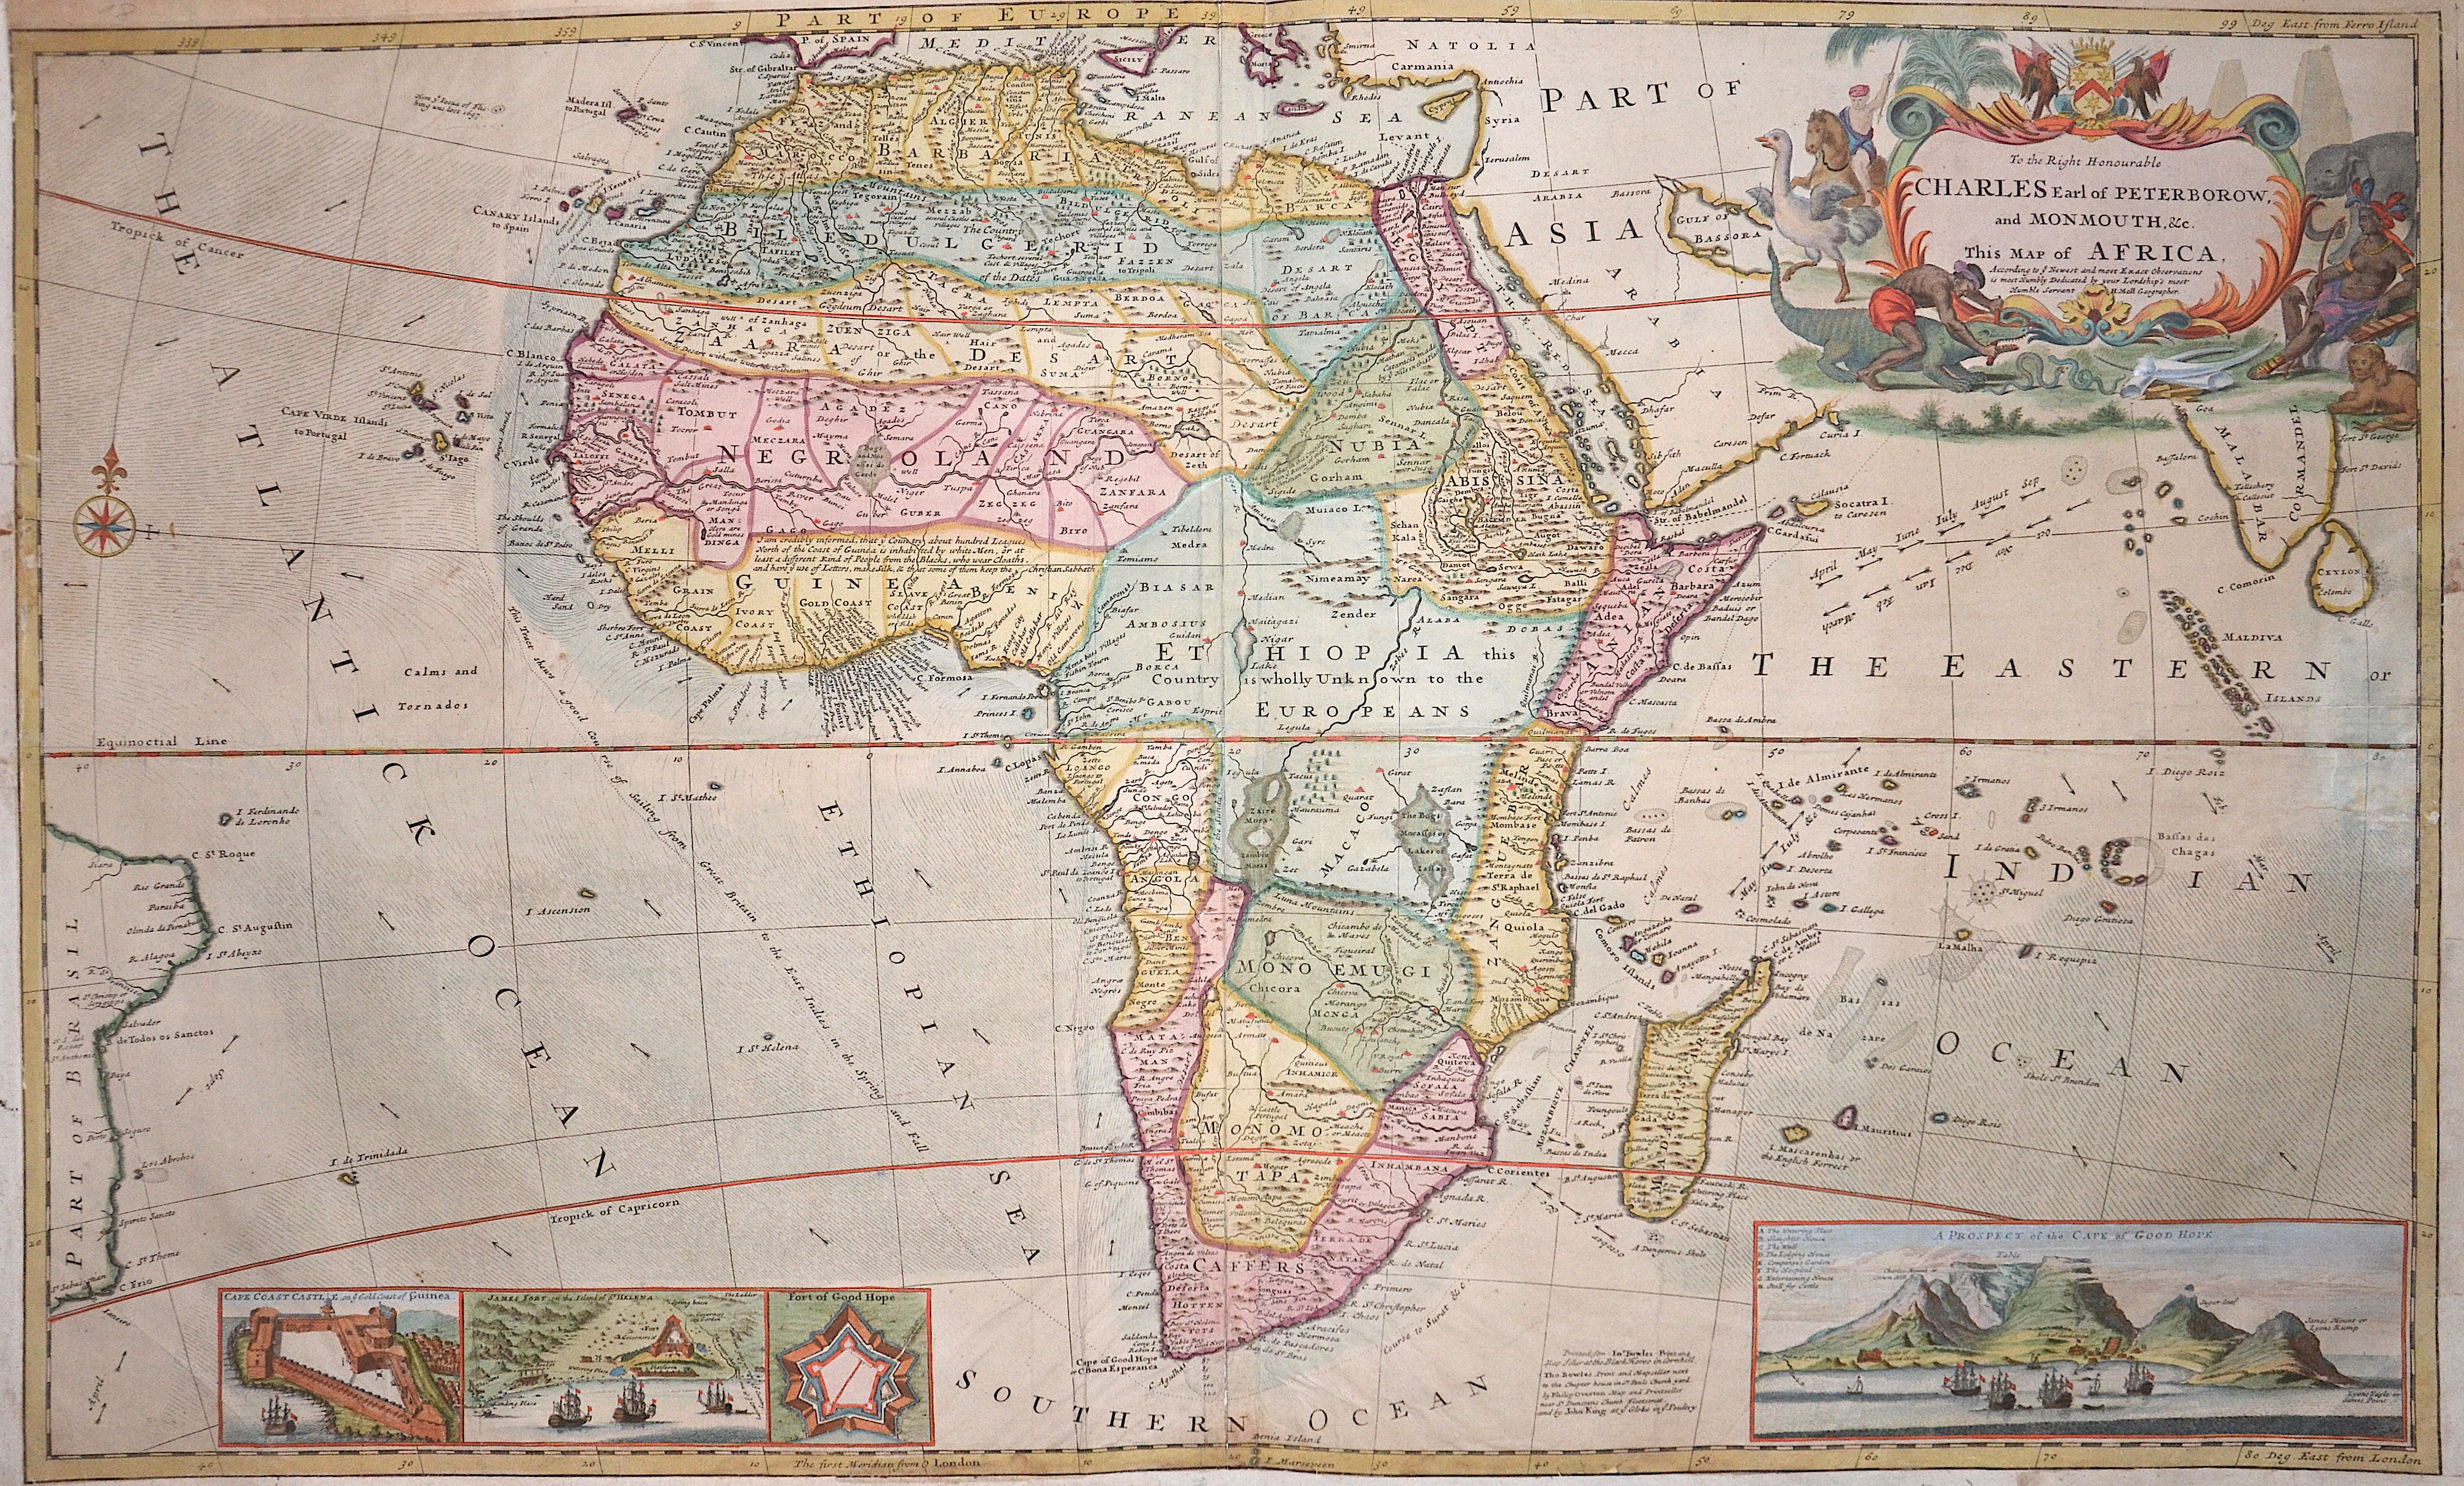 Moll  To the Right Honorable Charles Earl of Perterborow, and Monmouth & this map of Africa